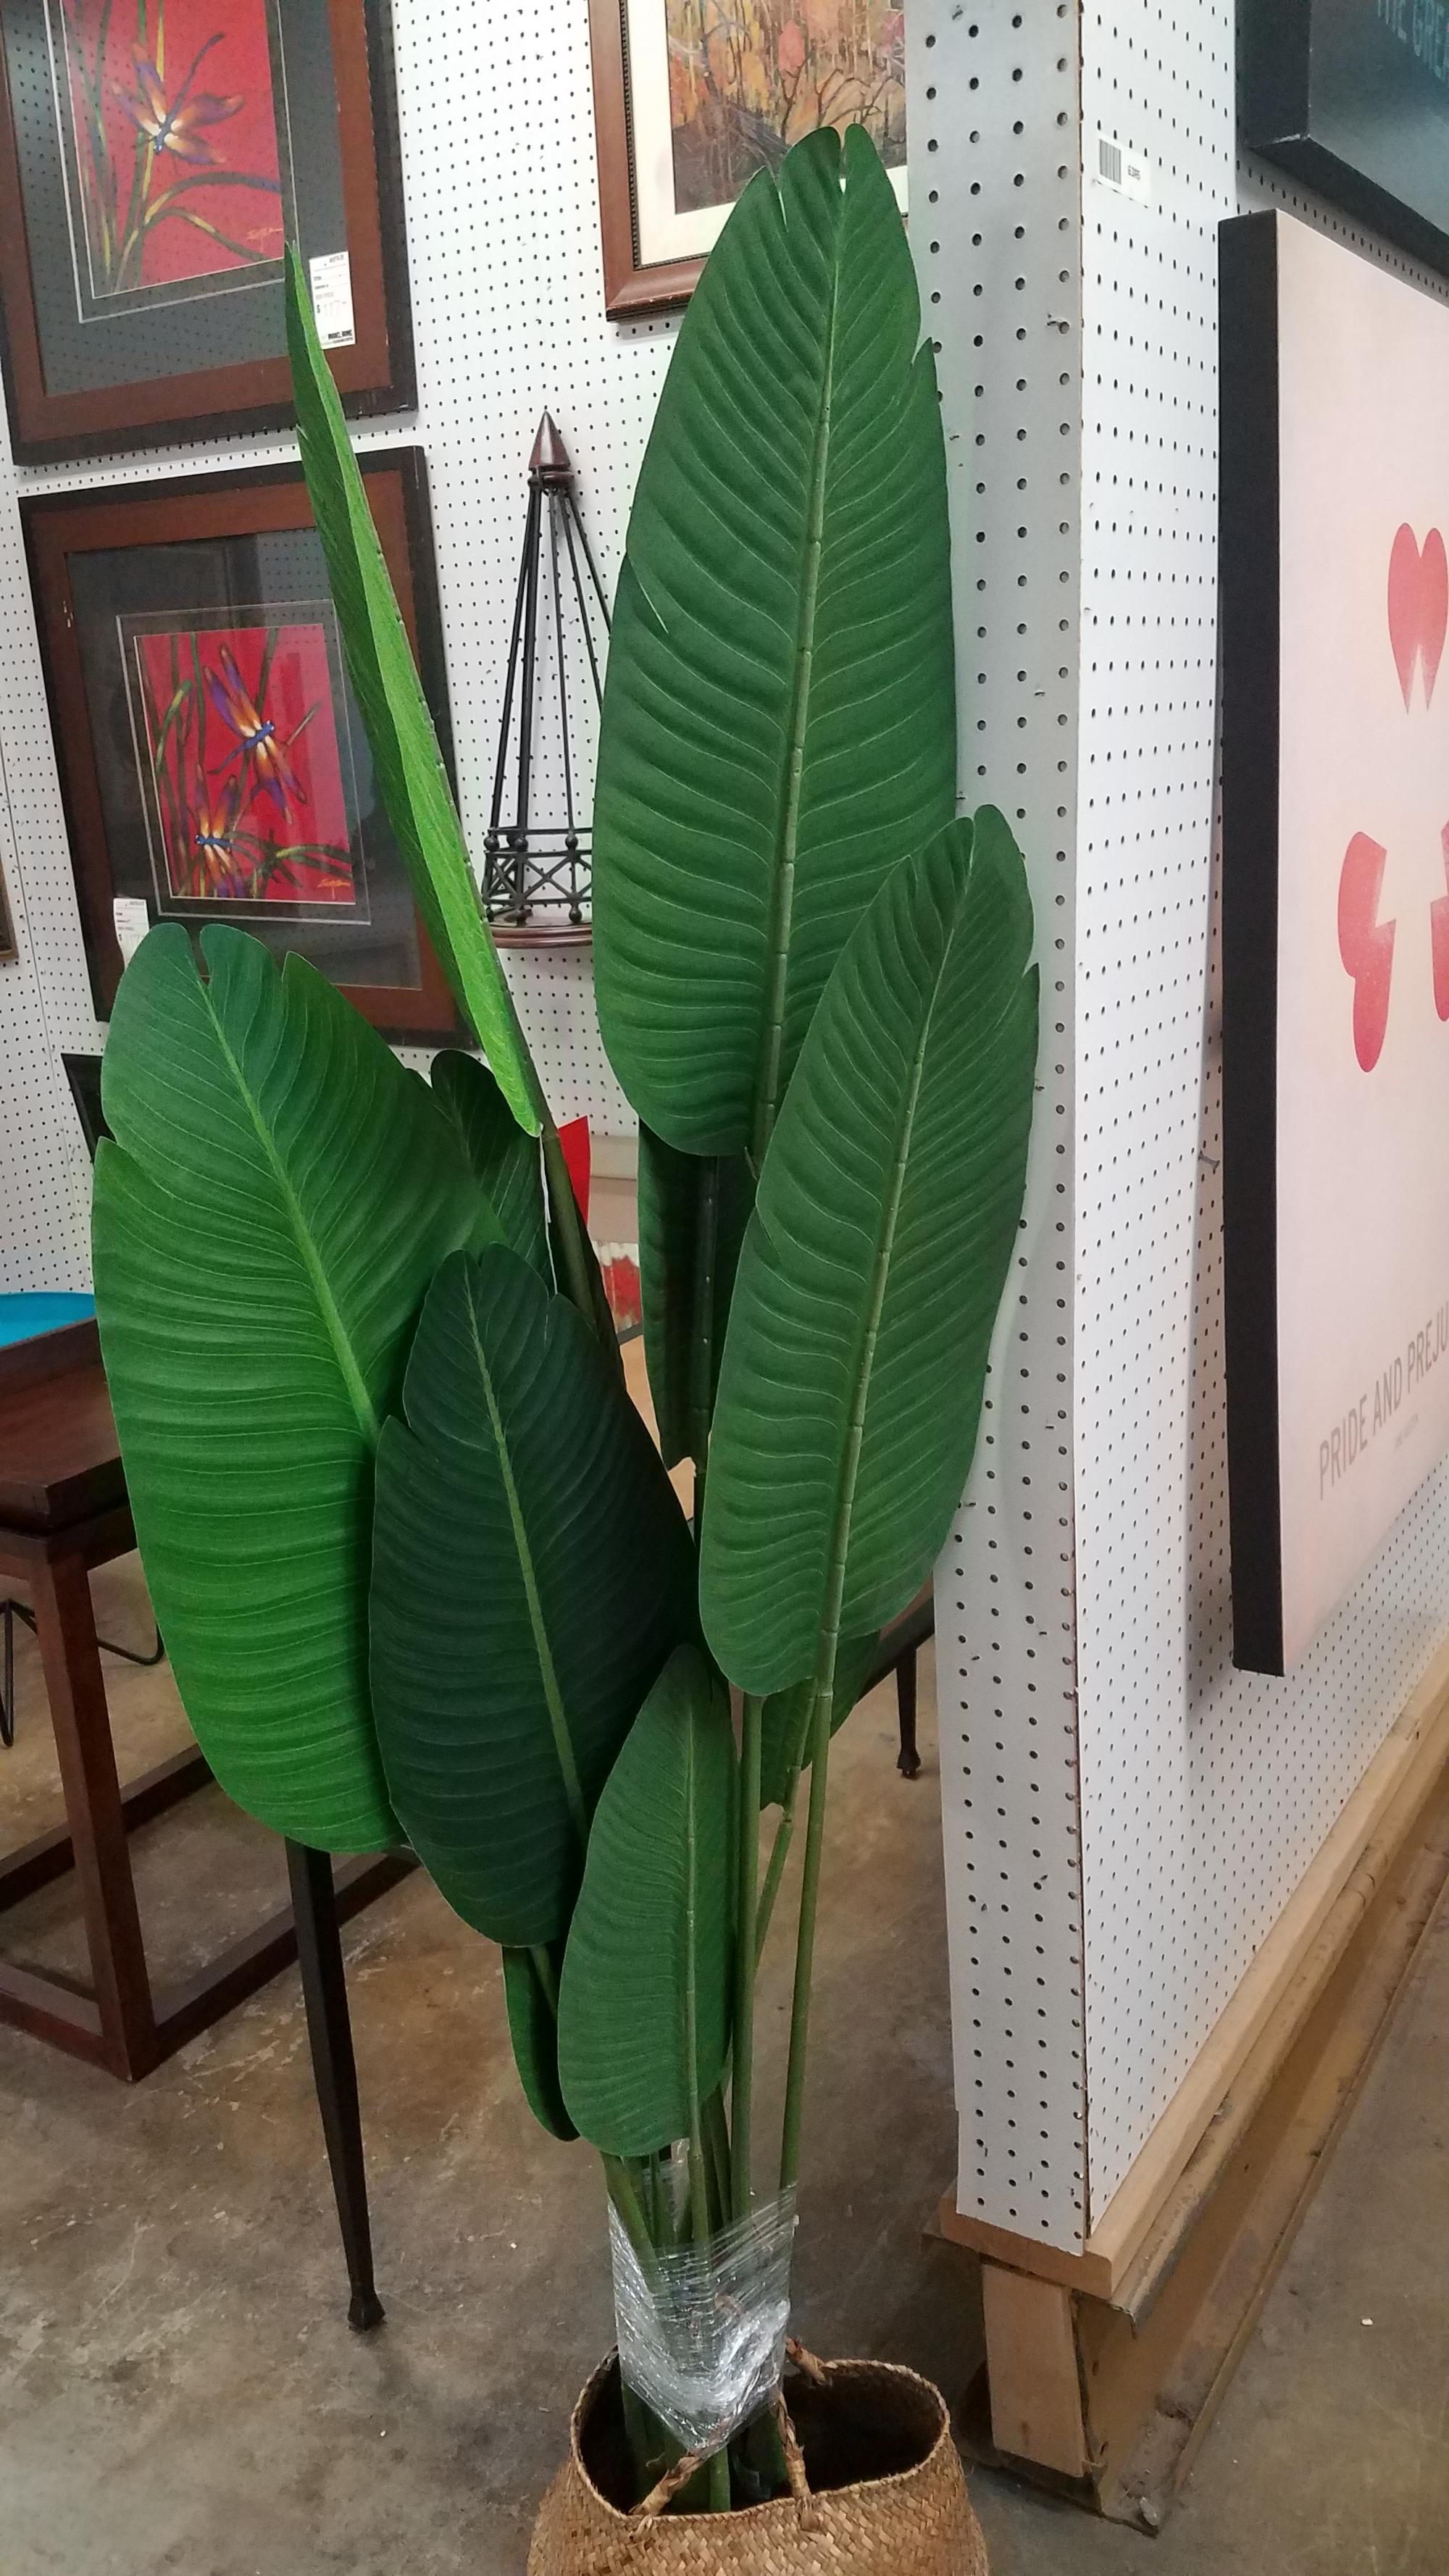 Banana Leaf 5' Tree